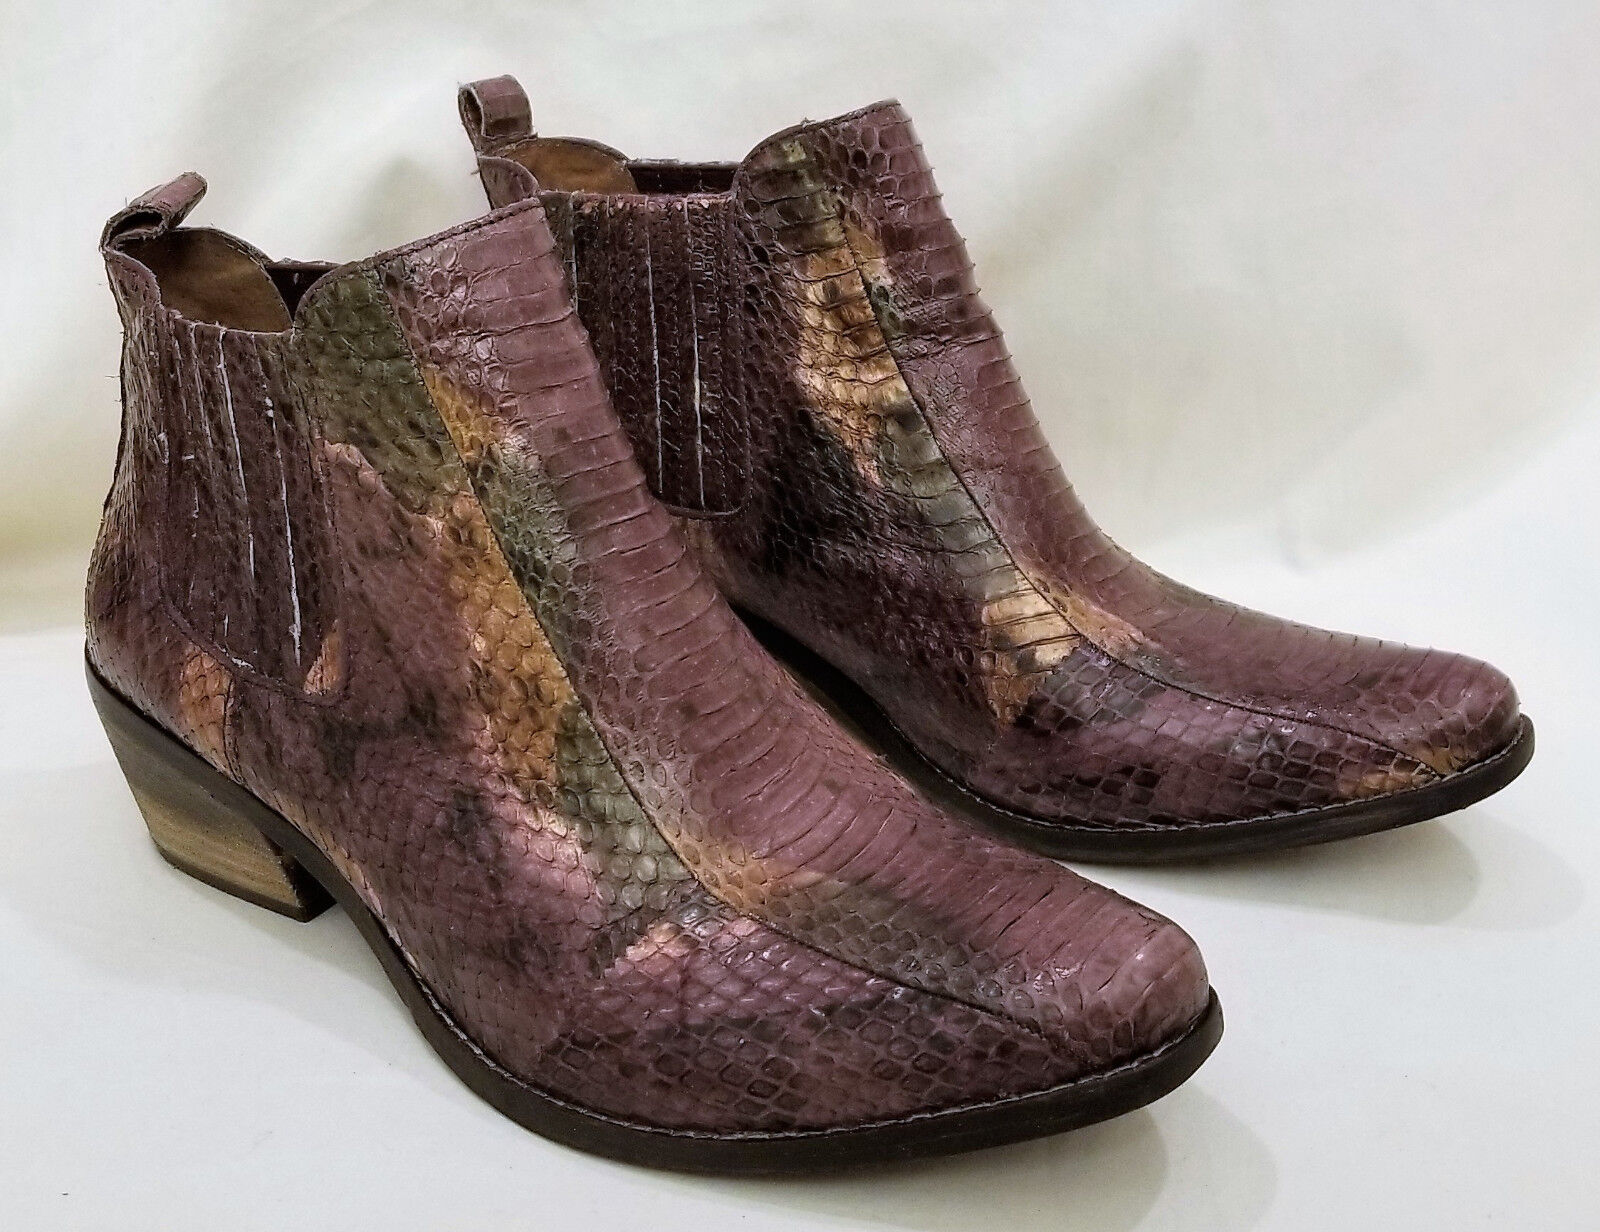 Cowboy Cowboy Cowboy Ankle Boots by Vince Camuto Size- 9.5 Multi-color Snake Pattern Leather 5786d3